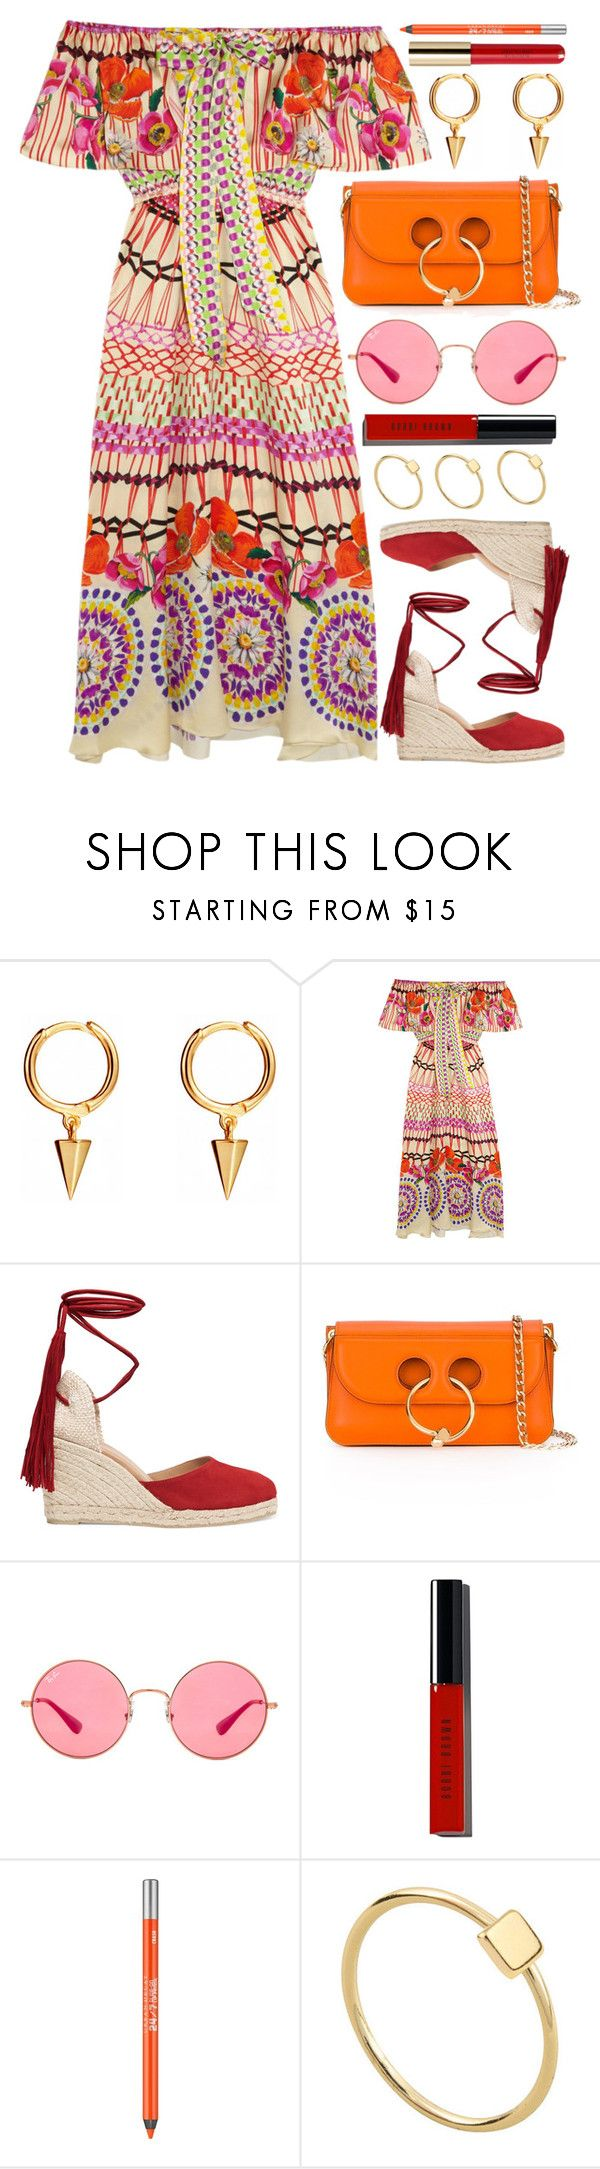 """Rhodes"" by monmondefou on Polyvore featuring Temperley London, Castañer, J.W. Anderson, Ray-Ban, Bobbi Brown Cosmetics, Urban Decay, red and orange"